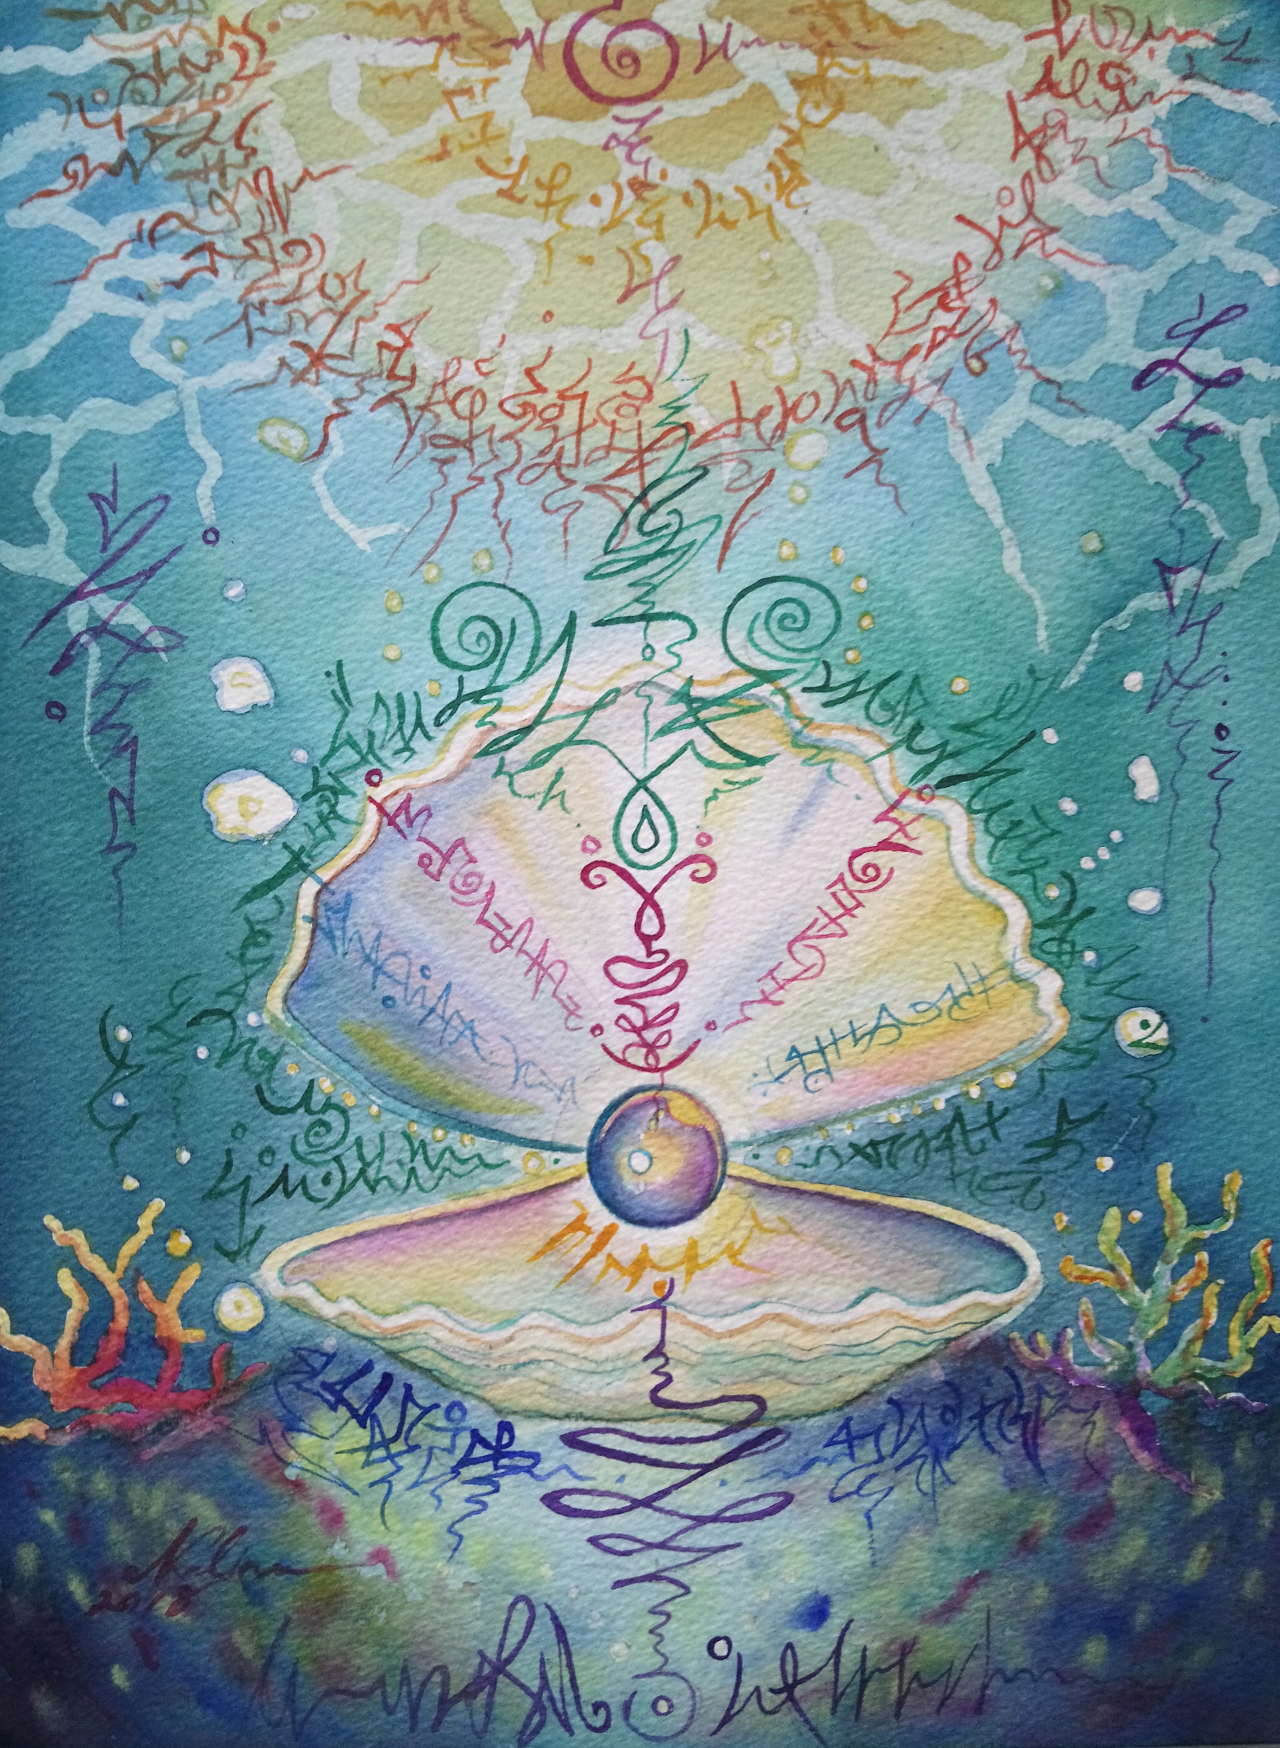 Artwork commissioned for Lalita by Nalinee Diosara. This is Lalita's soul code.